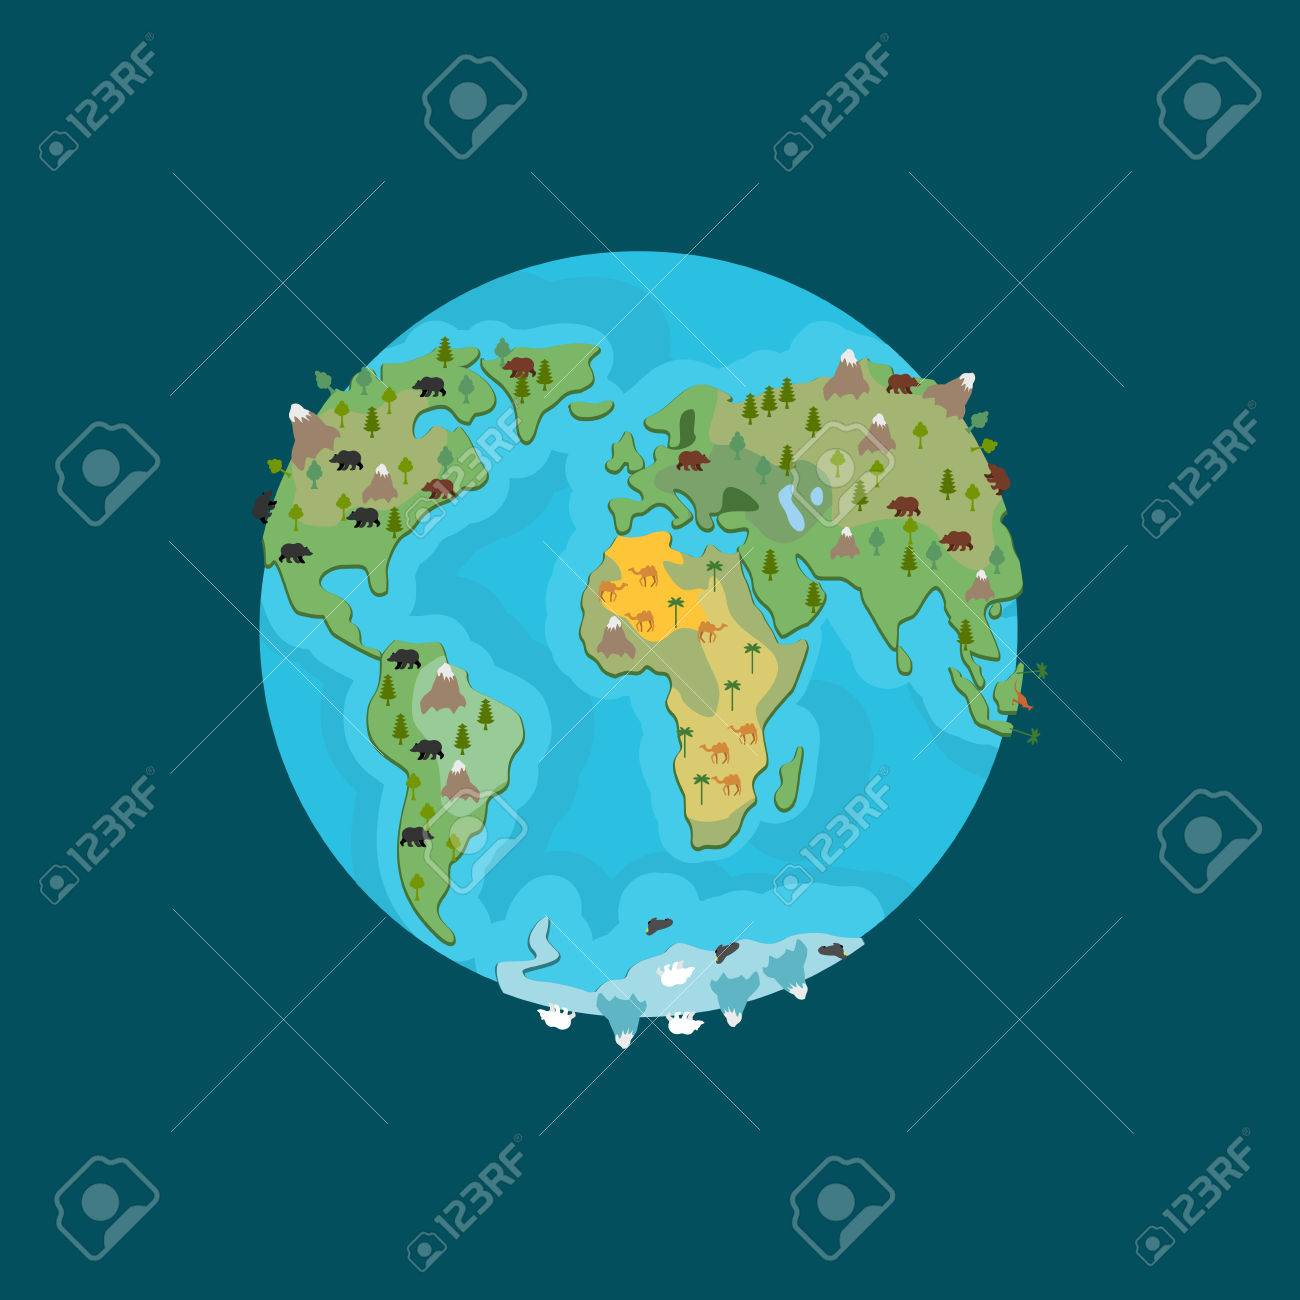 Planet Earth And Animals Beast On Continents World Map